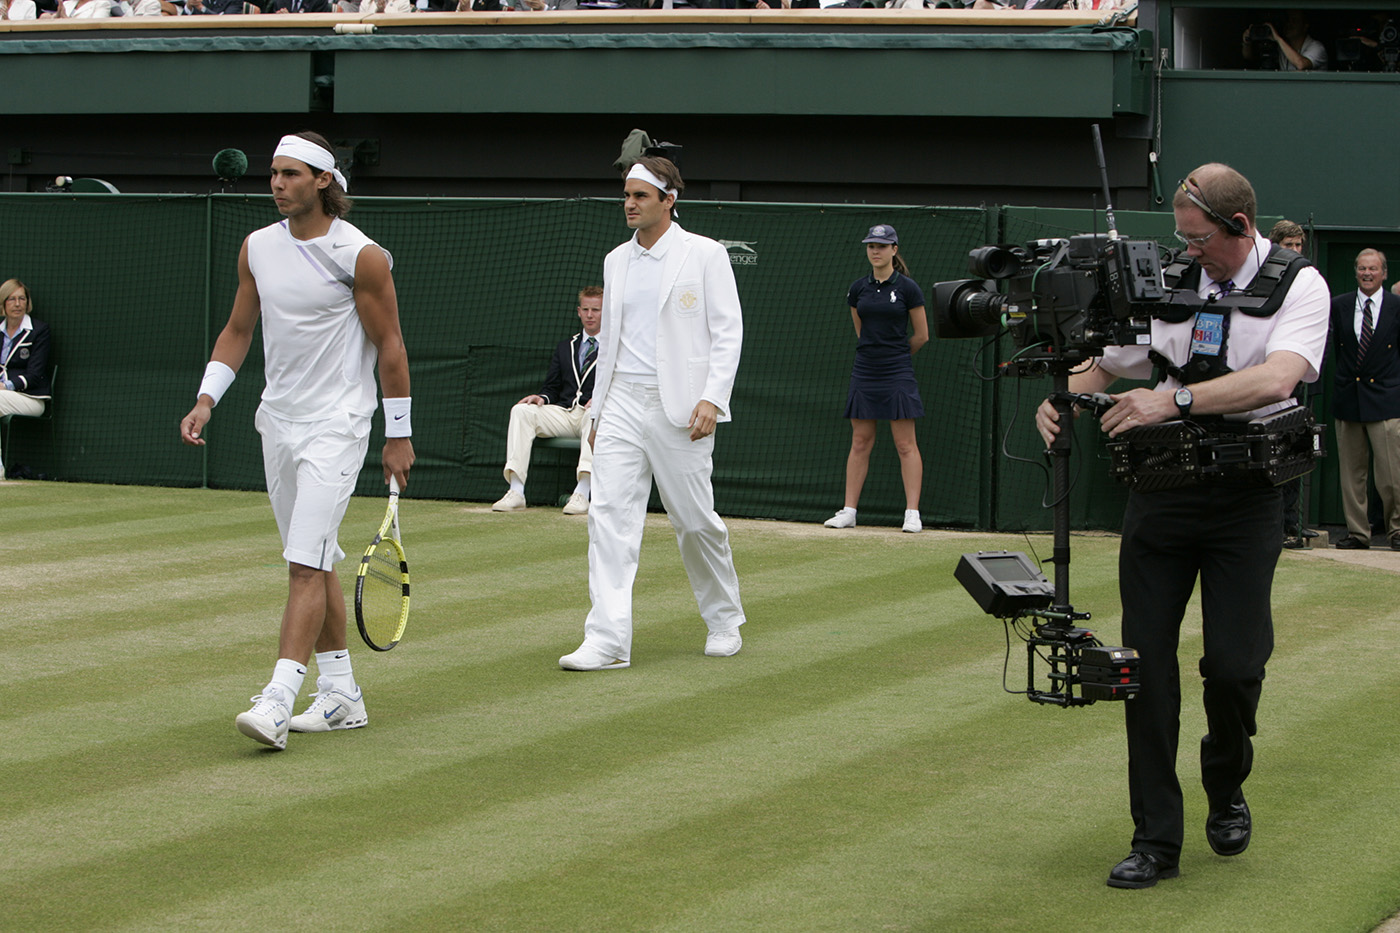 Wimbledon wants to monetize its archived content in digital push